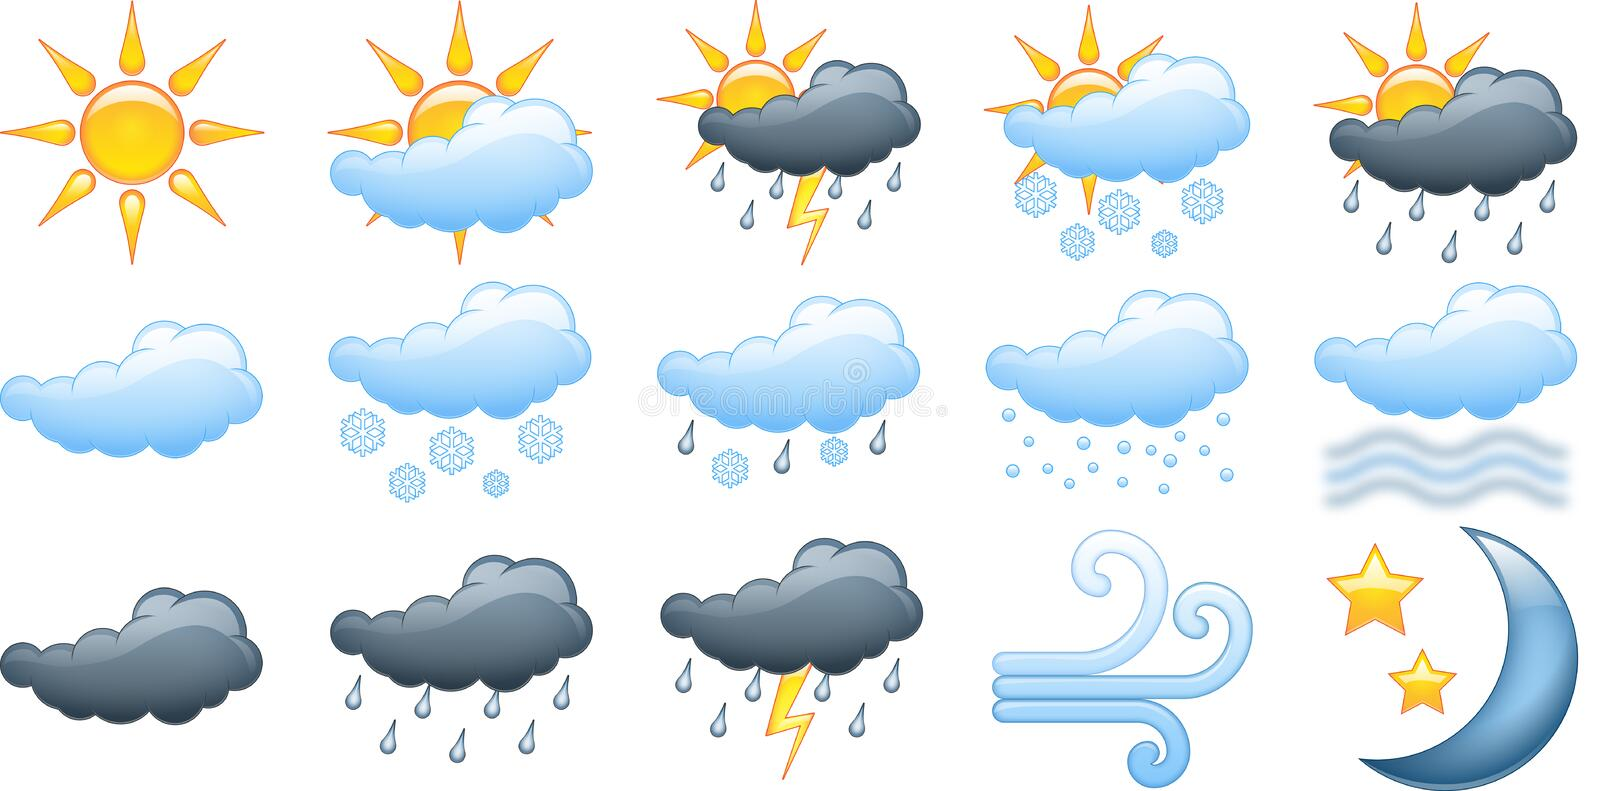 Weather. 15 different icons / illustrations that can be used for weather forecasts etc vector illustration